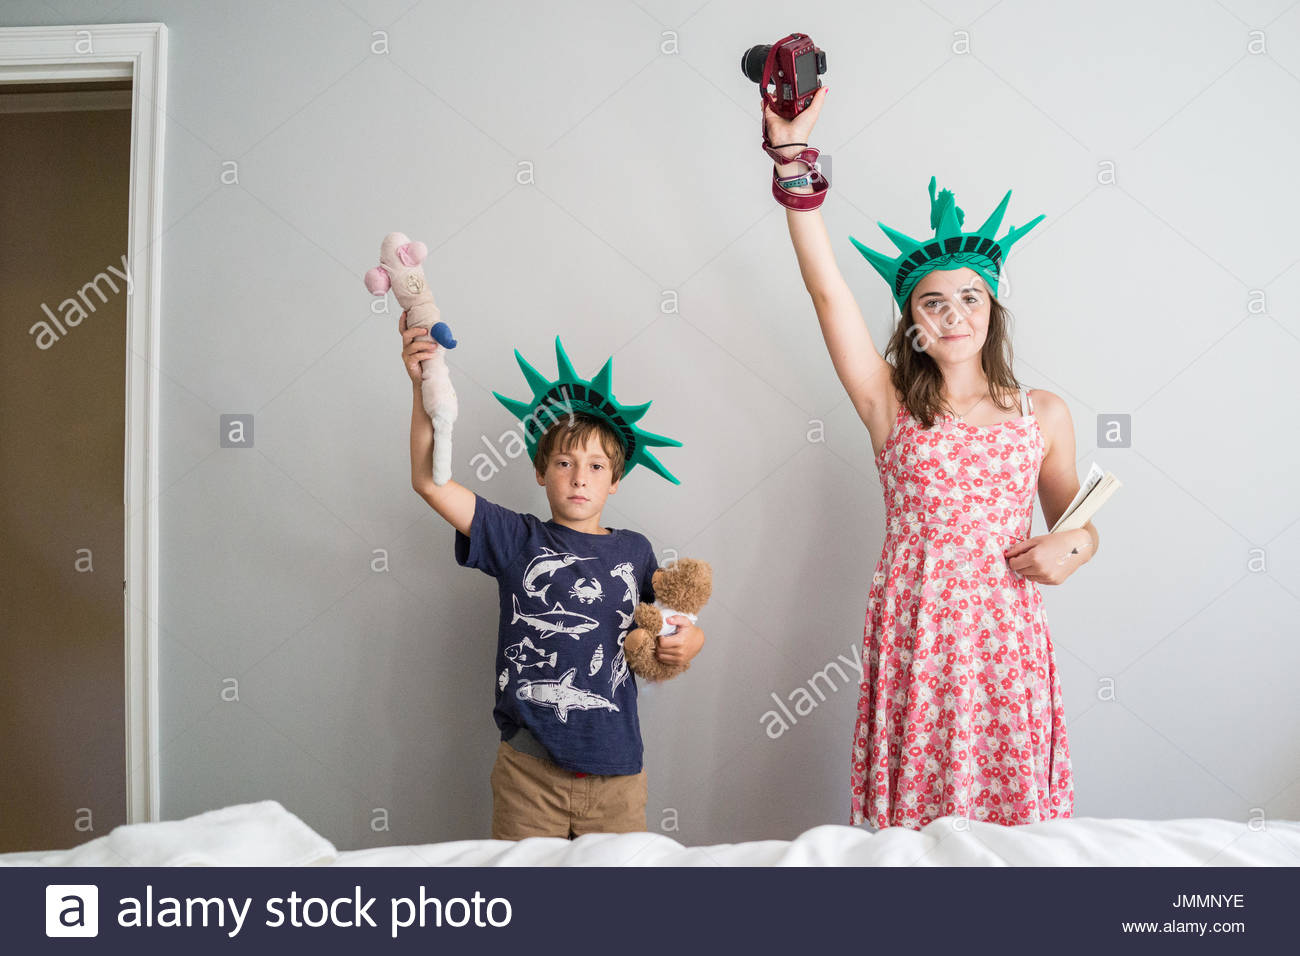 A young boy and a teenage girl pose like the statue of liberty against a gray wall. - Stock Image